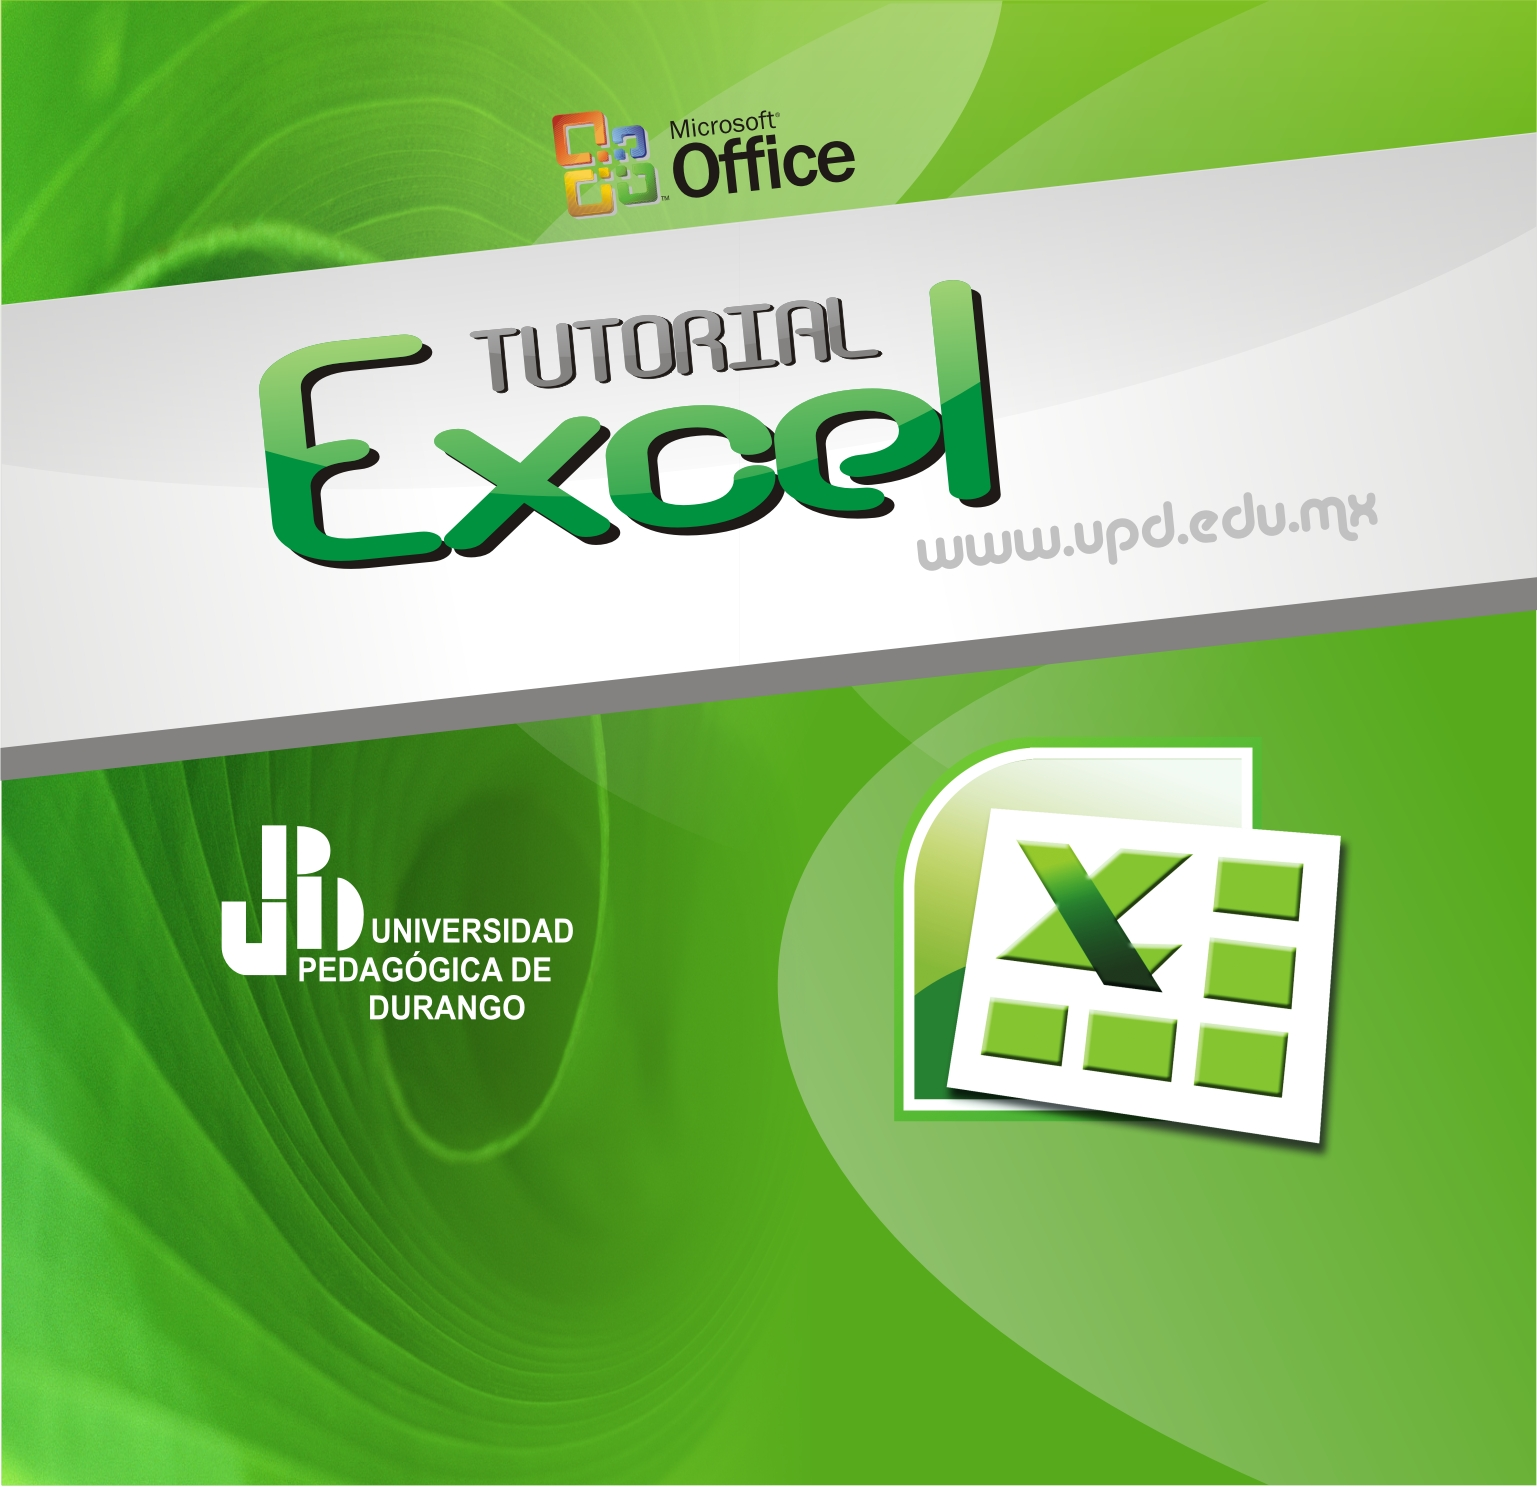 Ediblewildsus  Personable The Basics Of Iwork Number For Ms Excel Users  Radical Hub With Lovable Tutorexcel With Nice Nj Excel Also Ttest Excel In Addition How To Do Excel And How To Create Labels In Excel As Well As How To Use Subtotal In Excel Additionally Excel Group Mode From Radicalhubcom With Ediblewildsus  Lovable The Basics Of Iwork Number For Ms Excel Users  Radical Hub With Nice Tutorexcel And Personable Nj Excel Also Ttest Excel In Addition How To Do Excel From Radicalhubcom